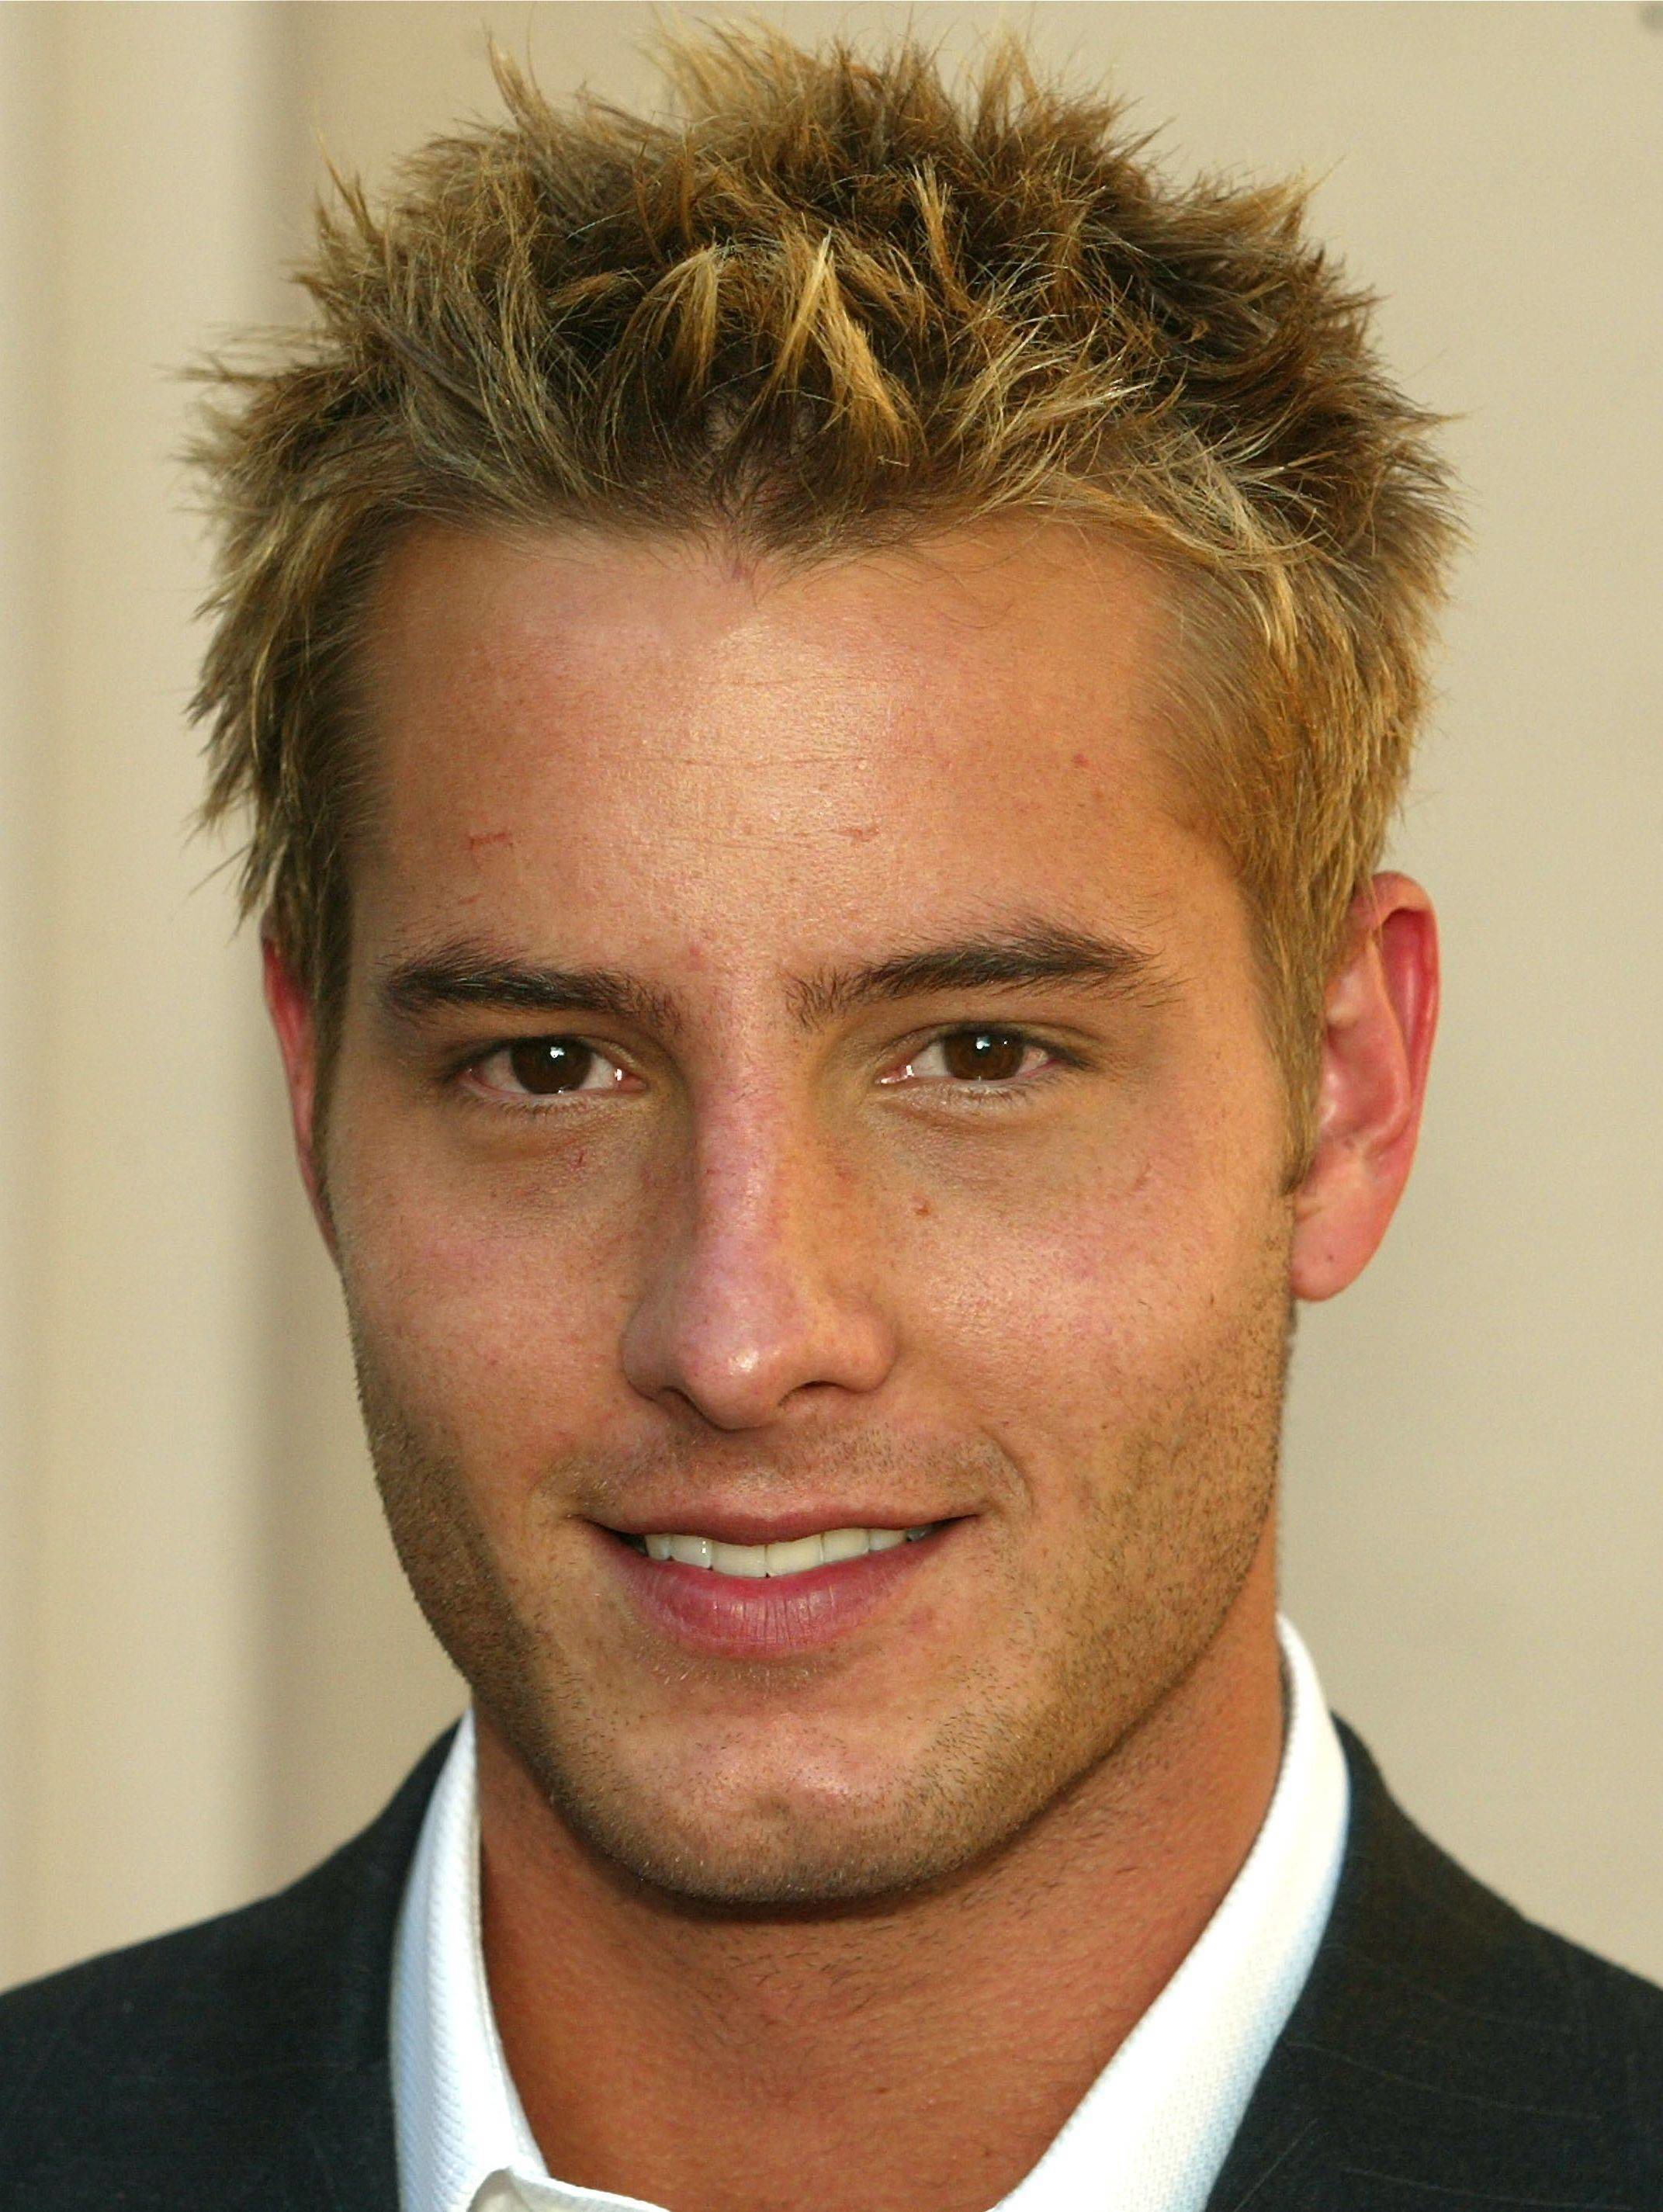 The Best 30 Best Hairstyles For Men To Try Pictures